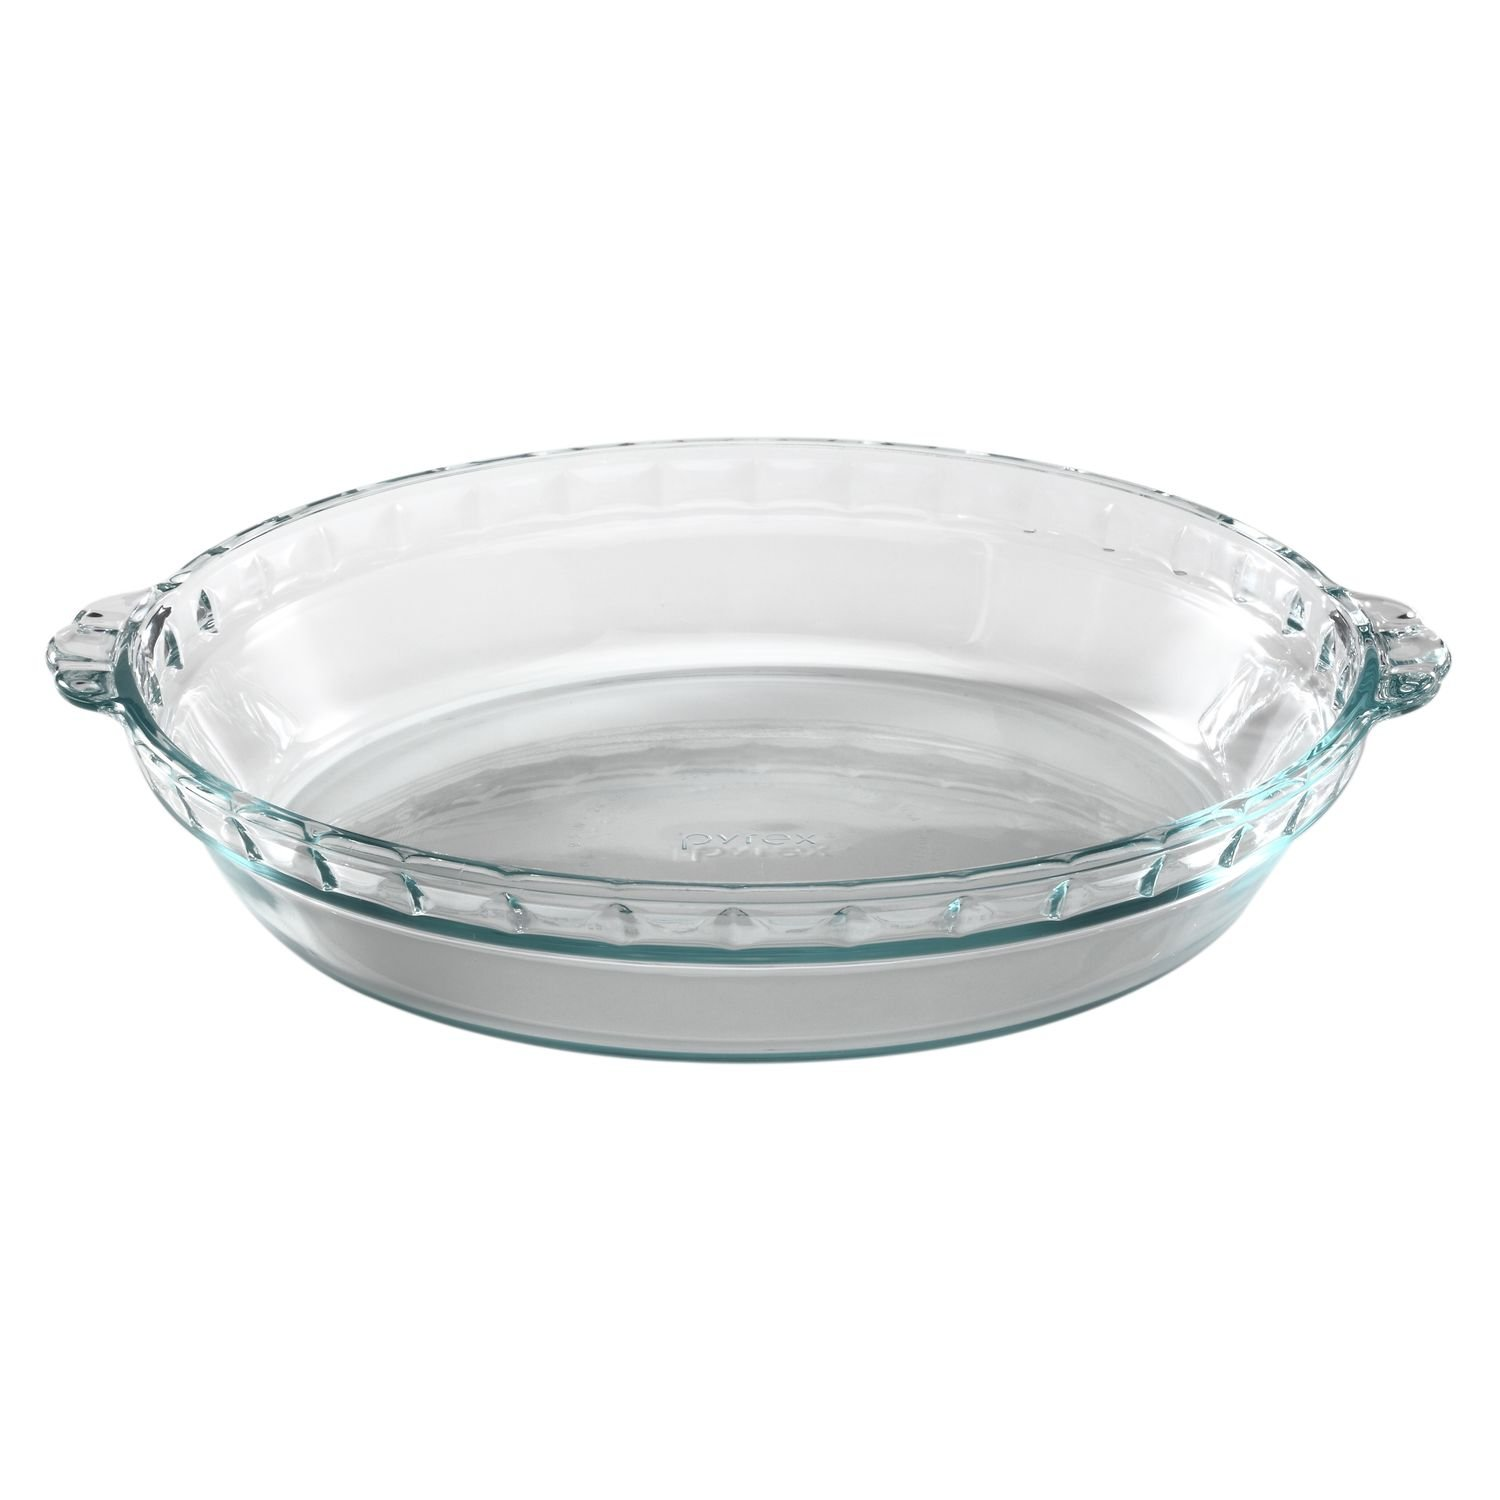 Pyrex Bakeware 9-1/2-Inch Scalloped Pie Plate, Clear (Pack of 3) 5302290